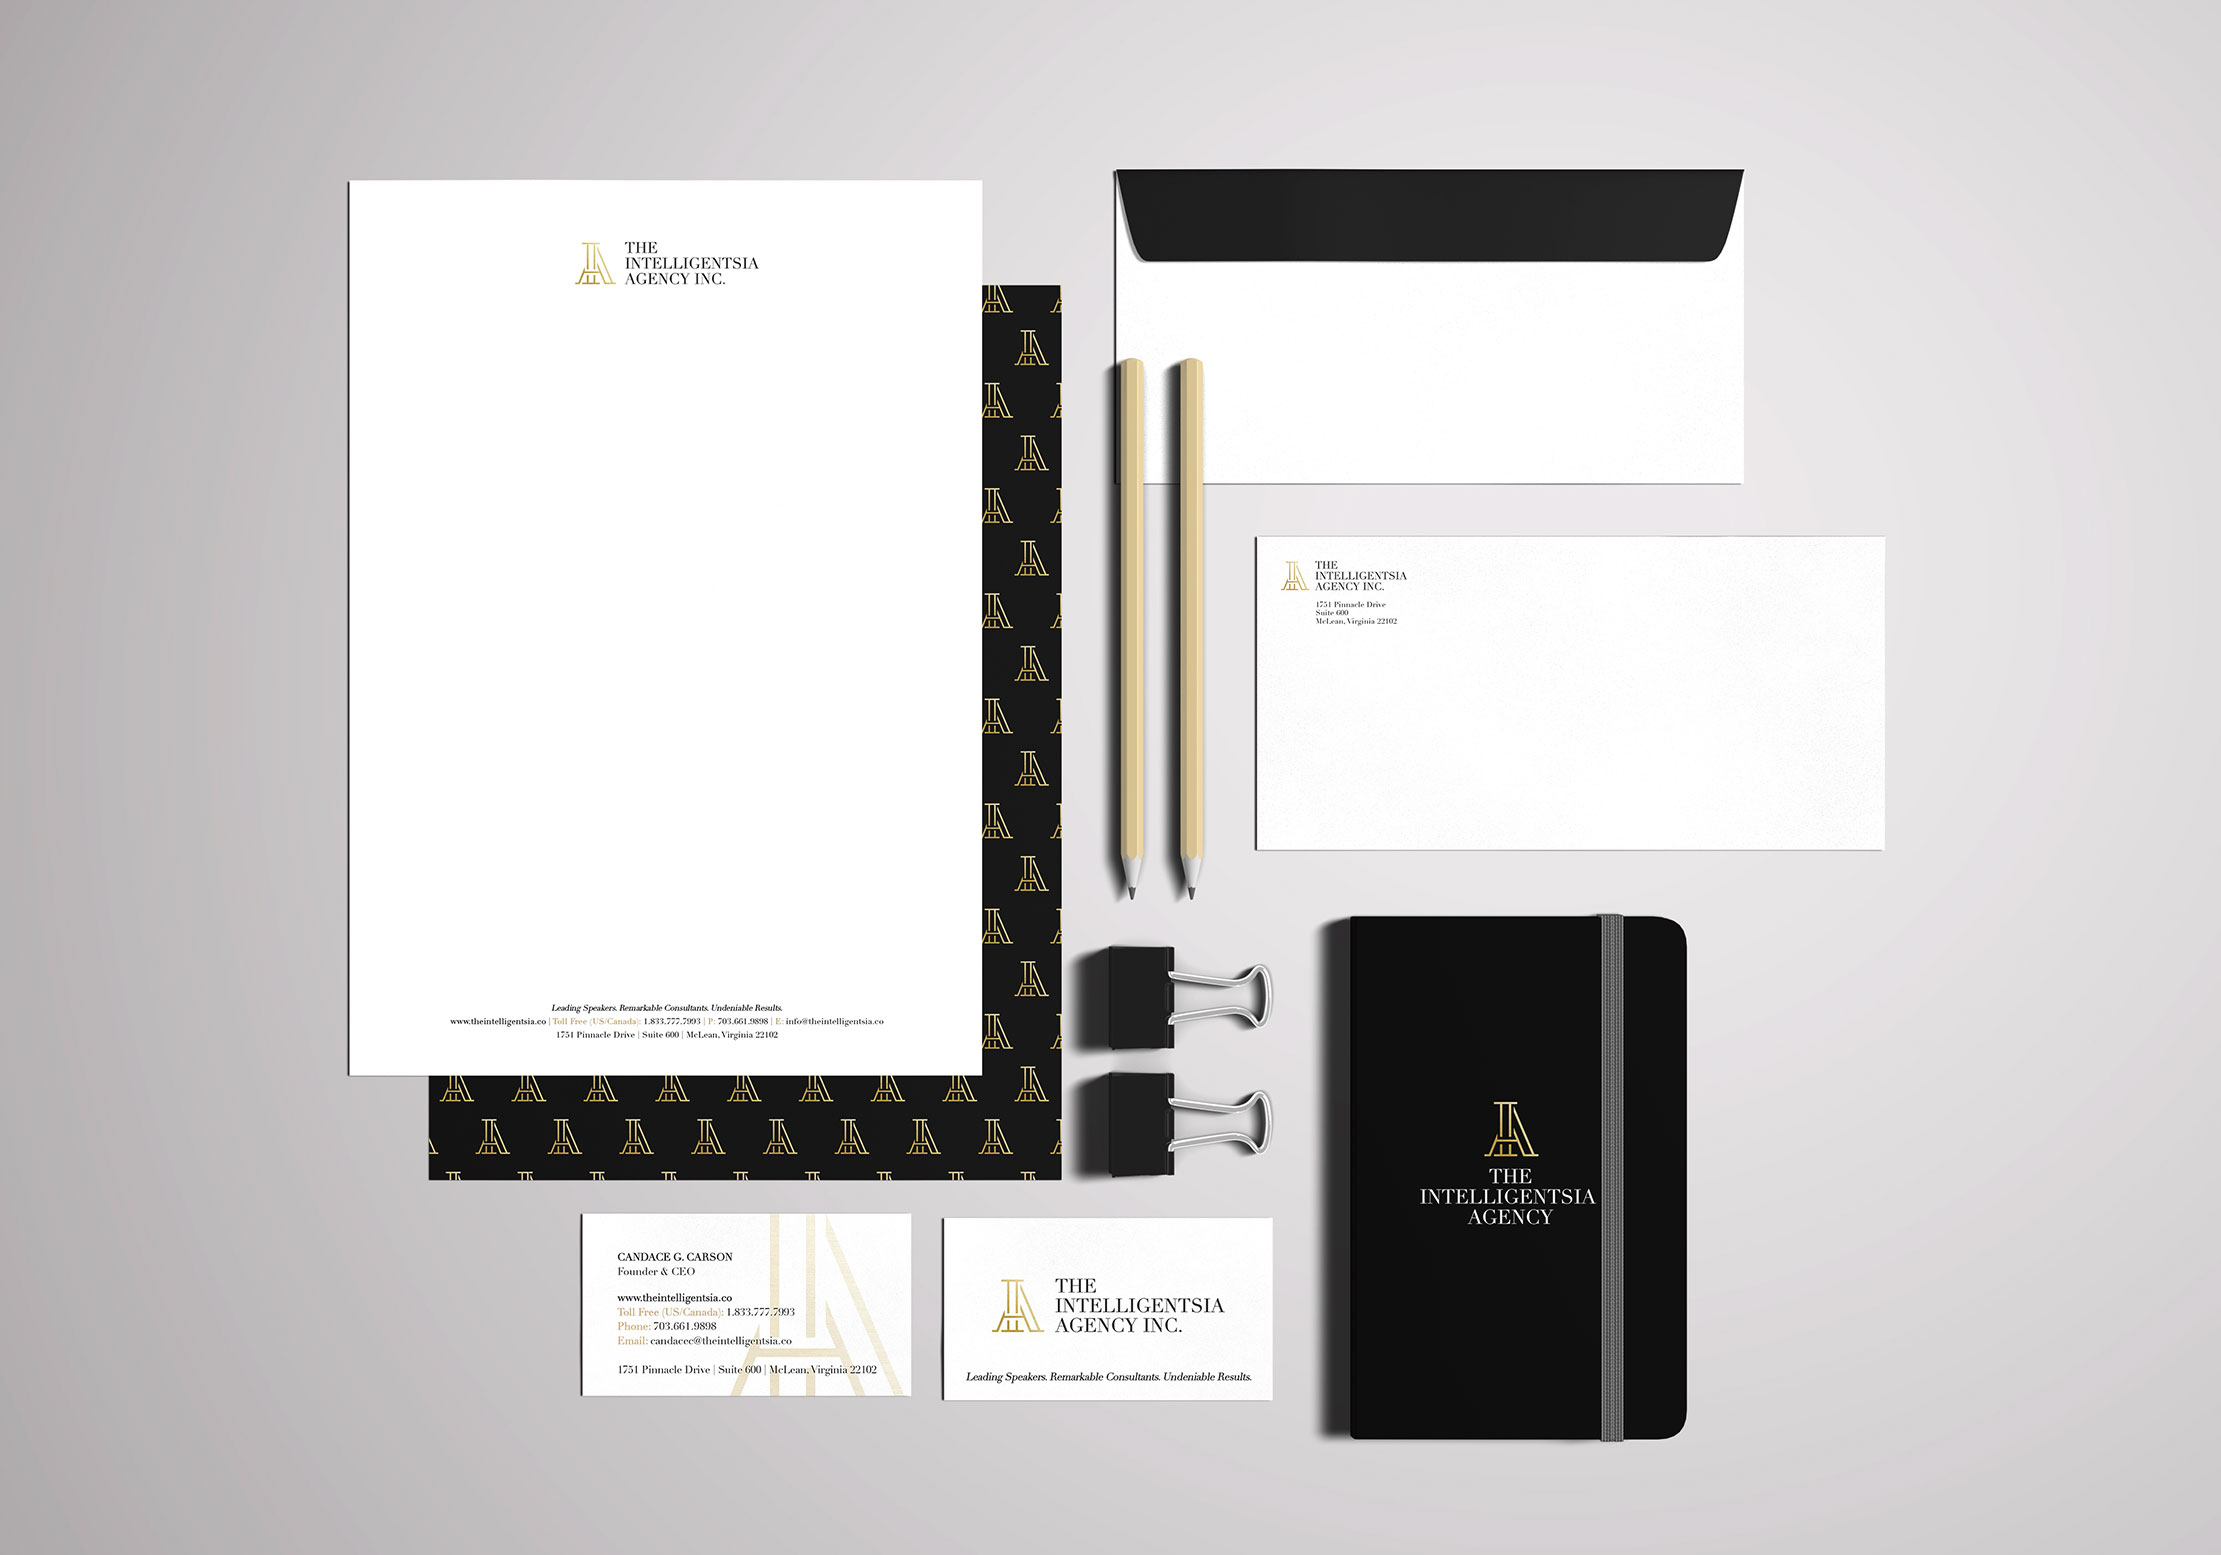 branding annapolis, md washington, dc graphic design